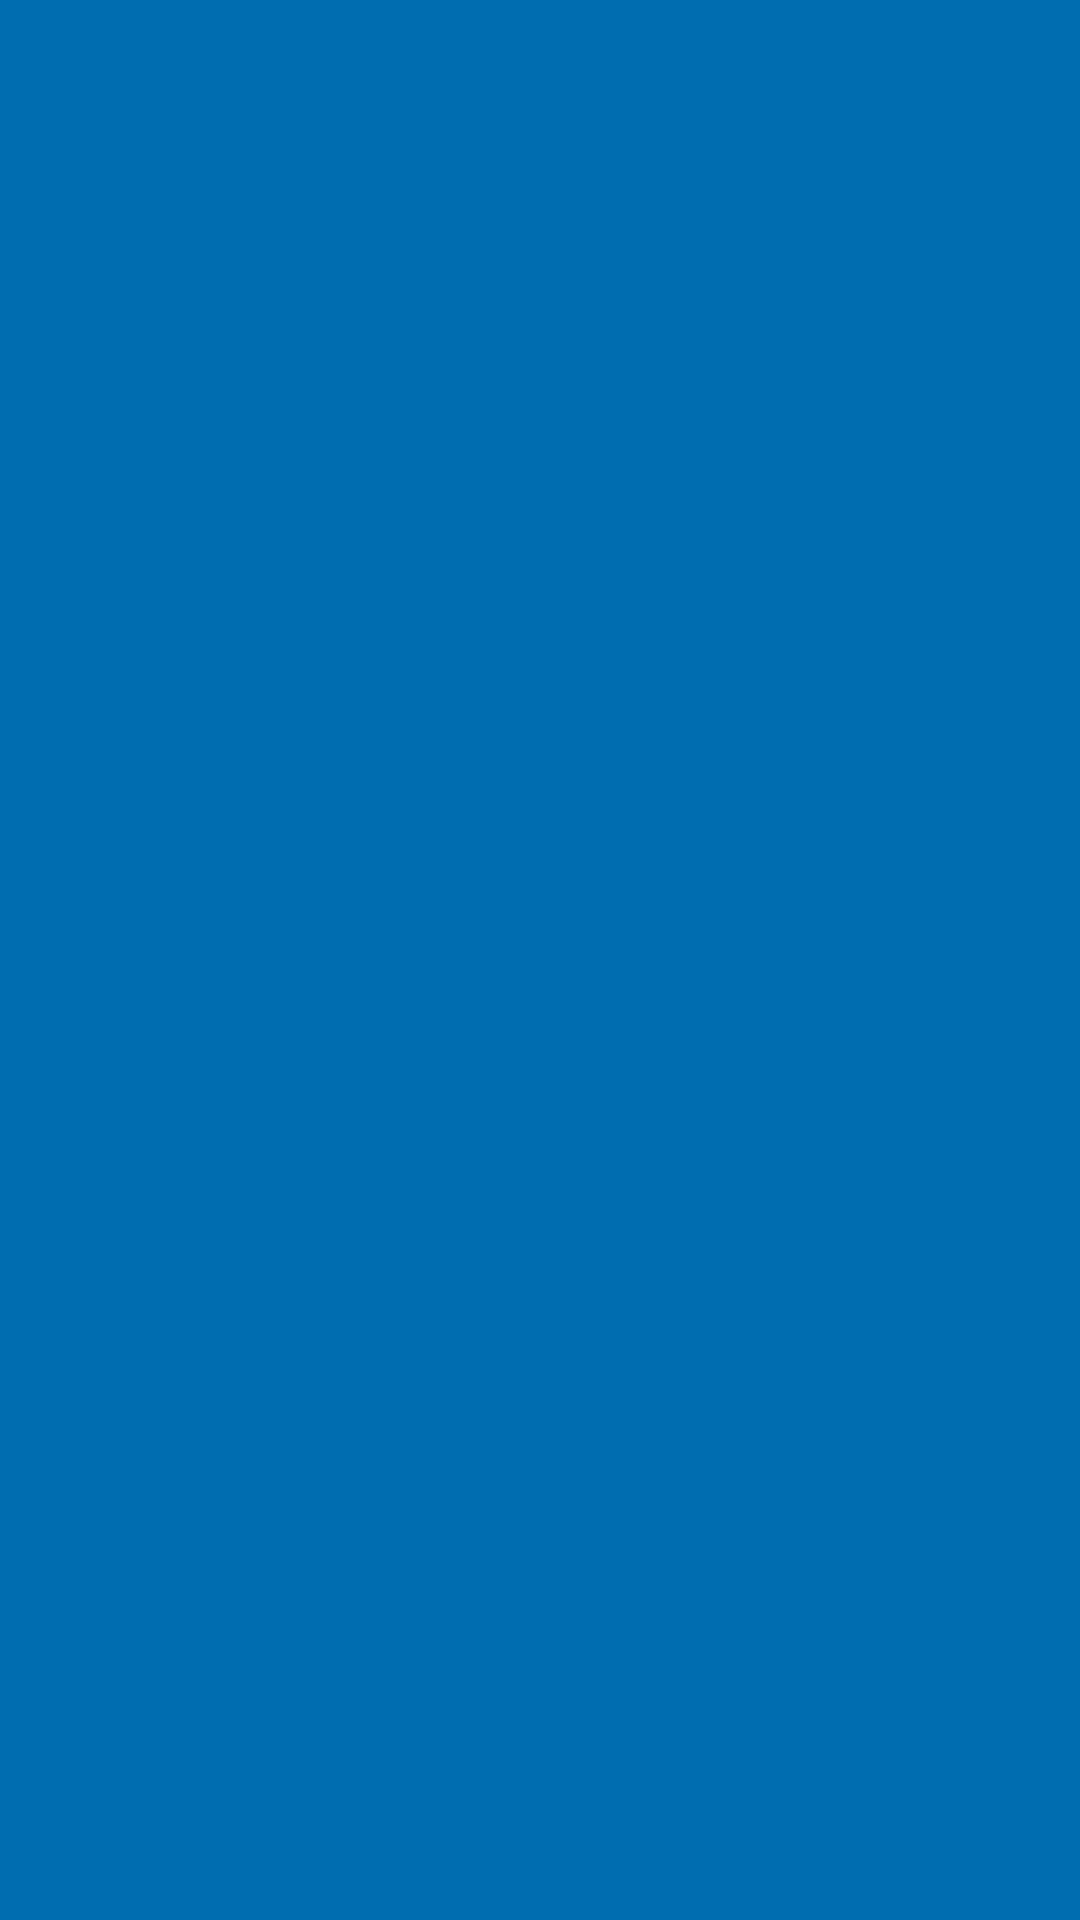 1080x1920 Honolulu Blue Solid Color Background